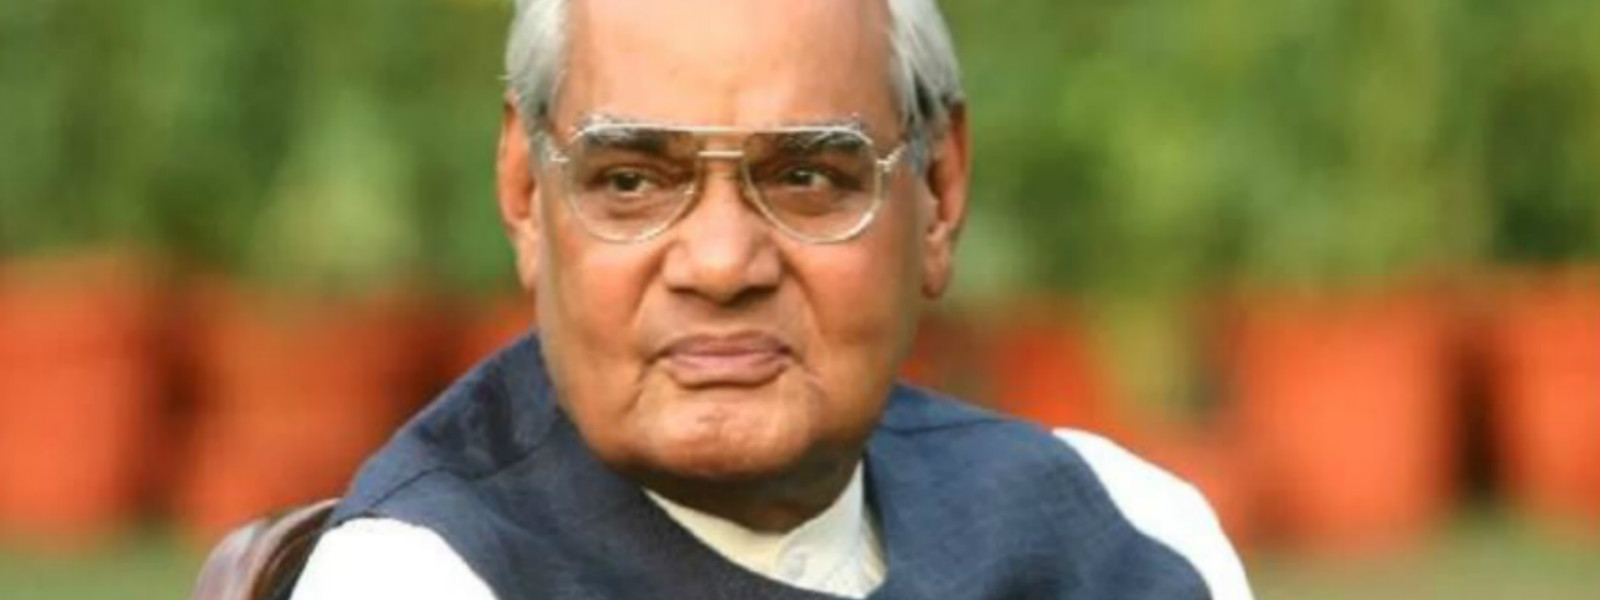 Former Indian PM Vajpayee passed away at 93